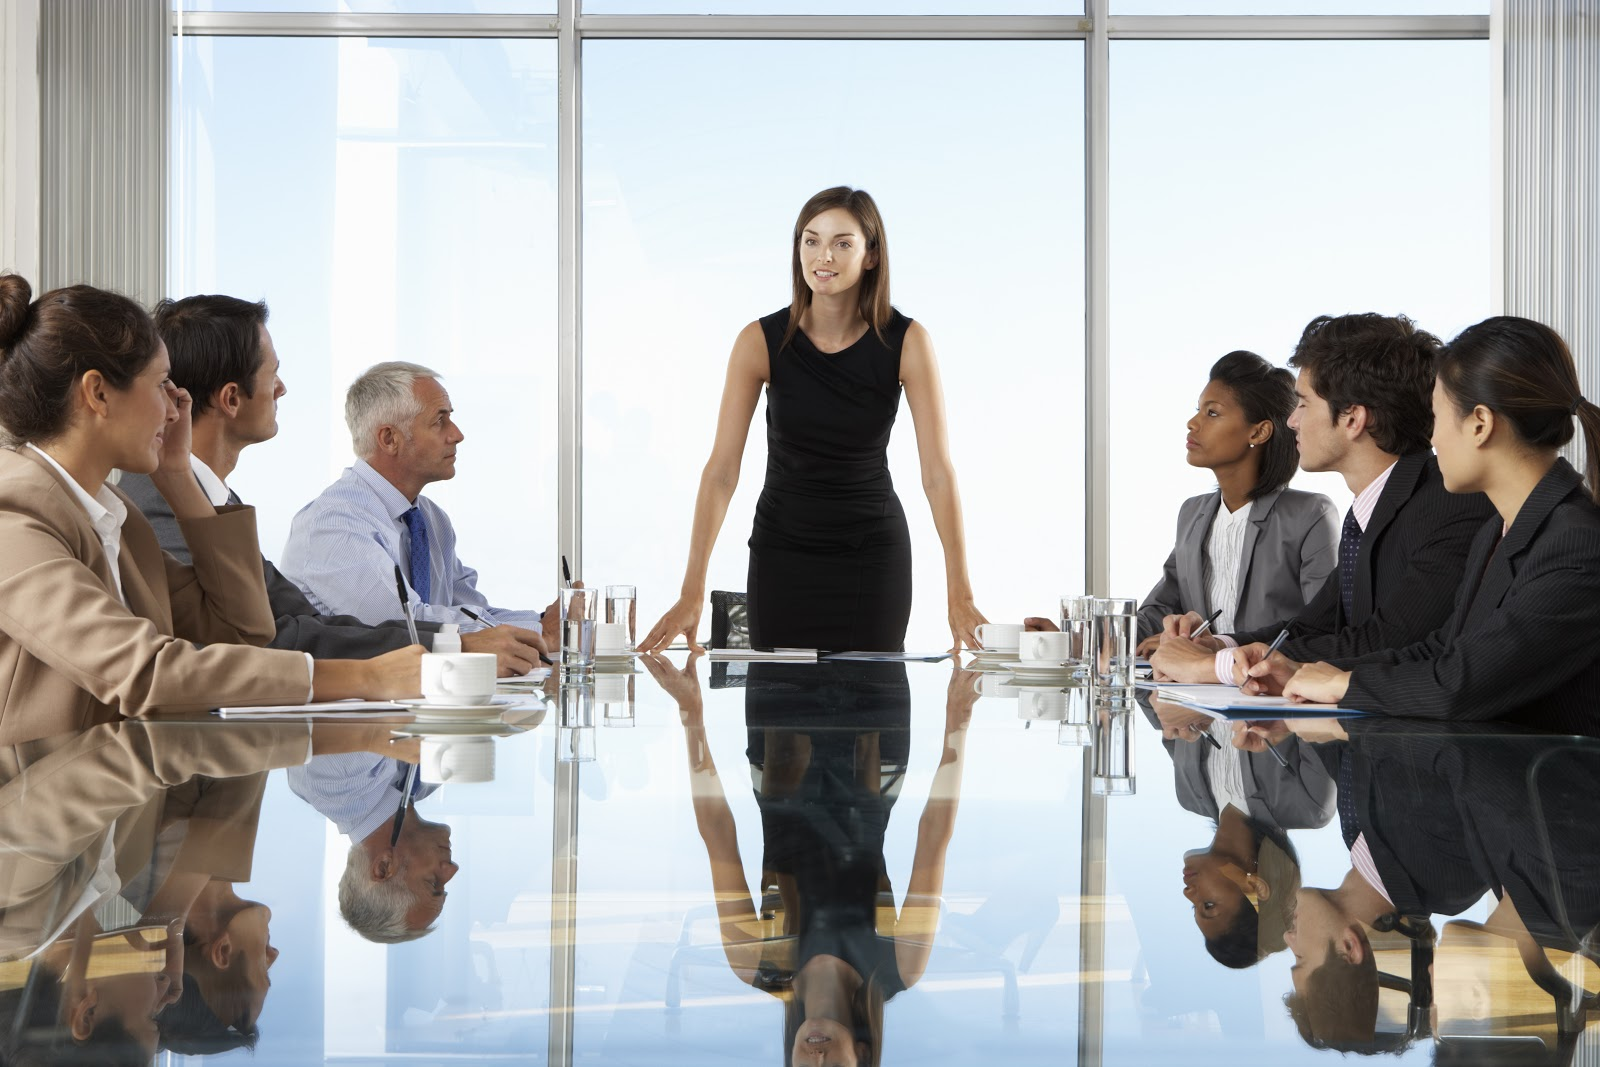 Types of business degrees: CEO leads company meeting